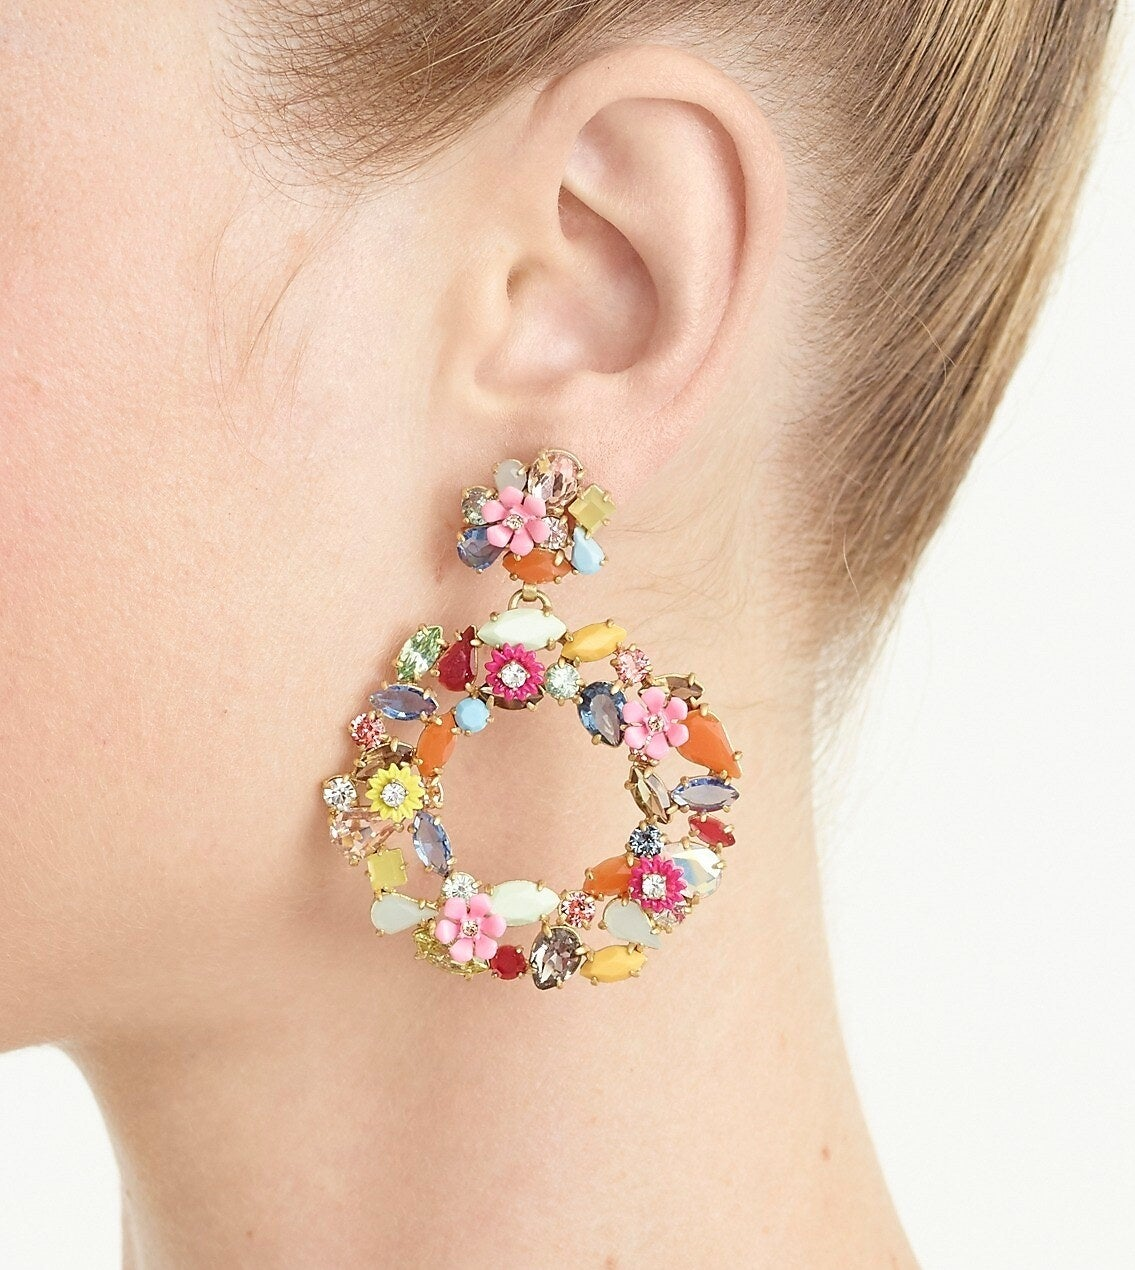 Model wearing the circular stud earrings with different colored stones and flowers